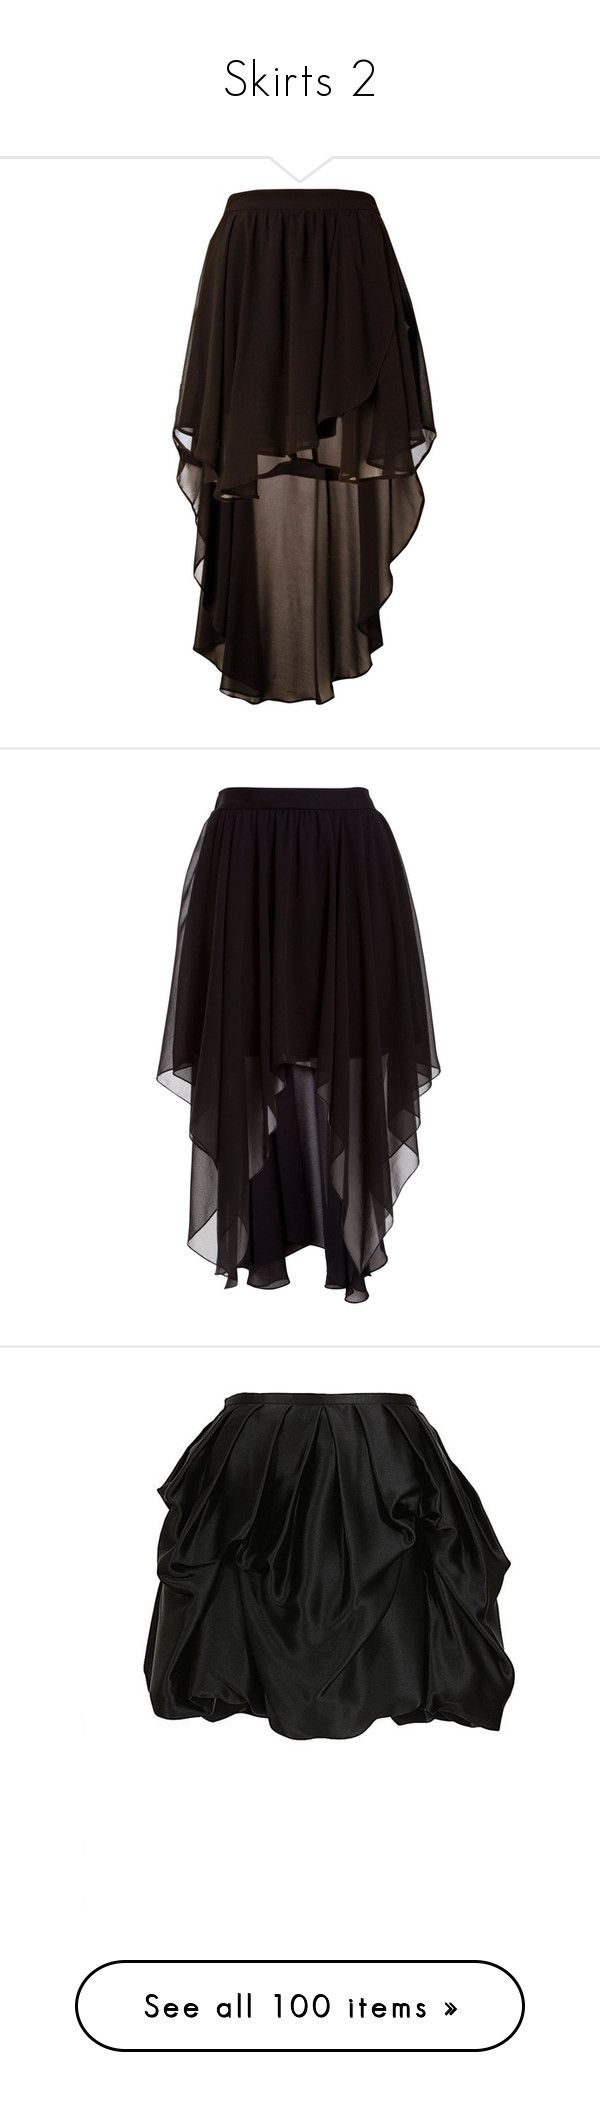 """""""Skirts 2"""" by lilacmayn ❤ liked on Polyvore featuring skirts, bottoms, saias, faldas, hi low skirt, hi lo skirt, lipsy, high low skirt, short front long back skirt and mini skirts"""